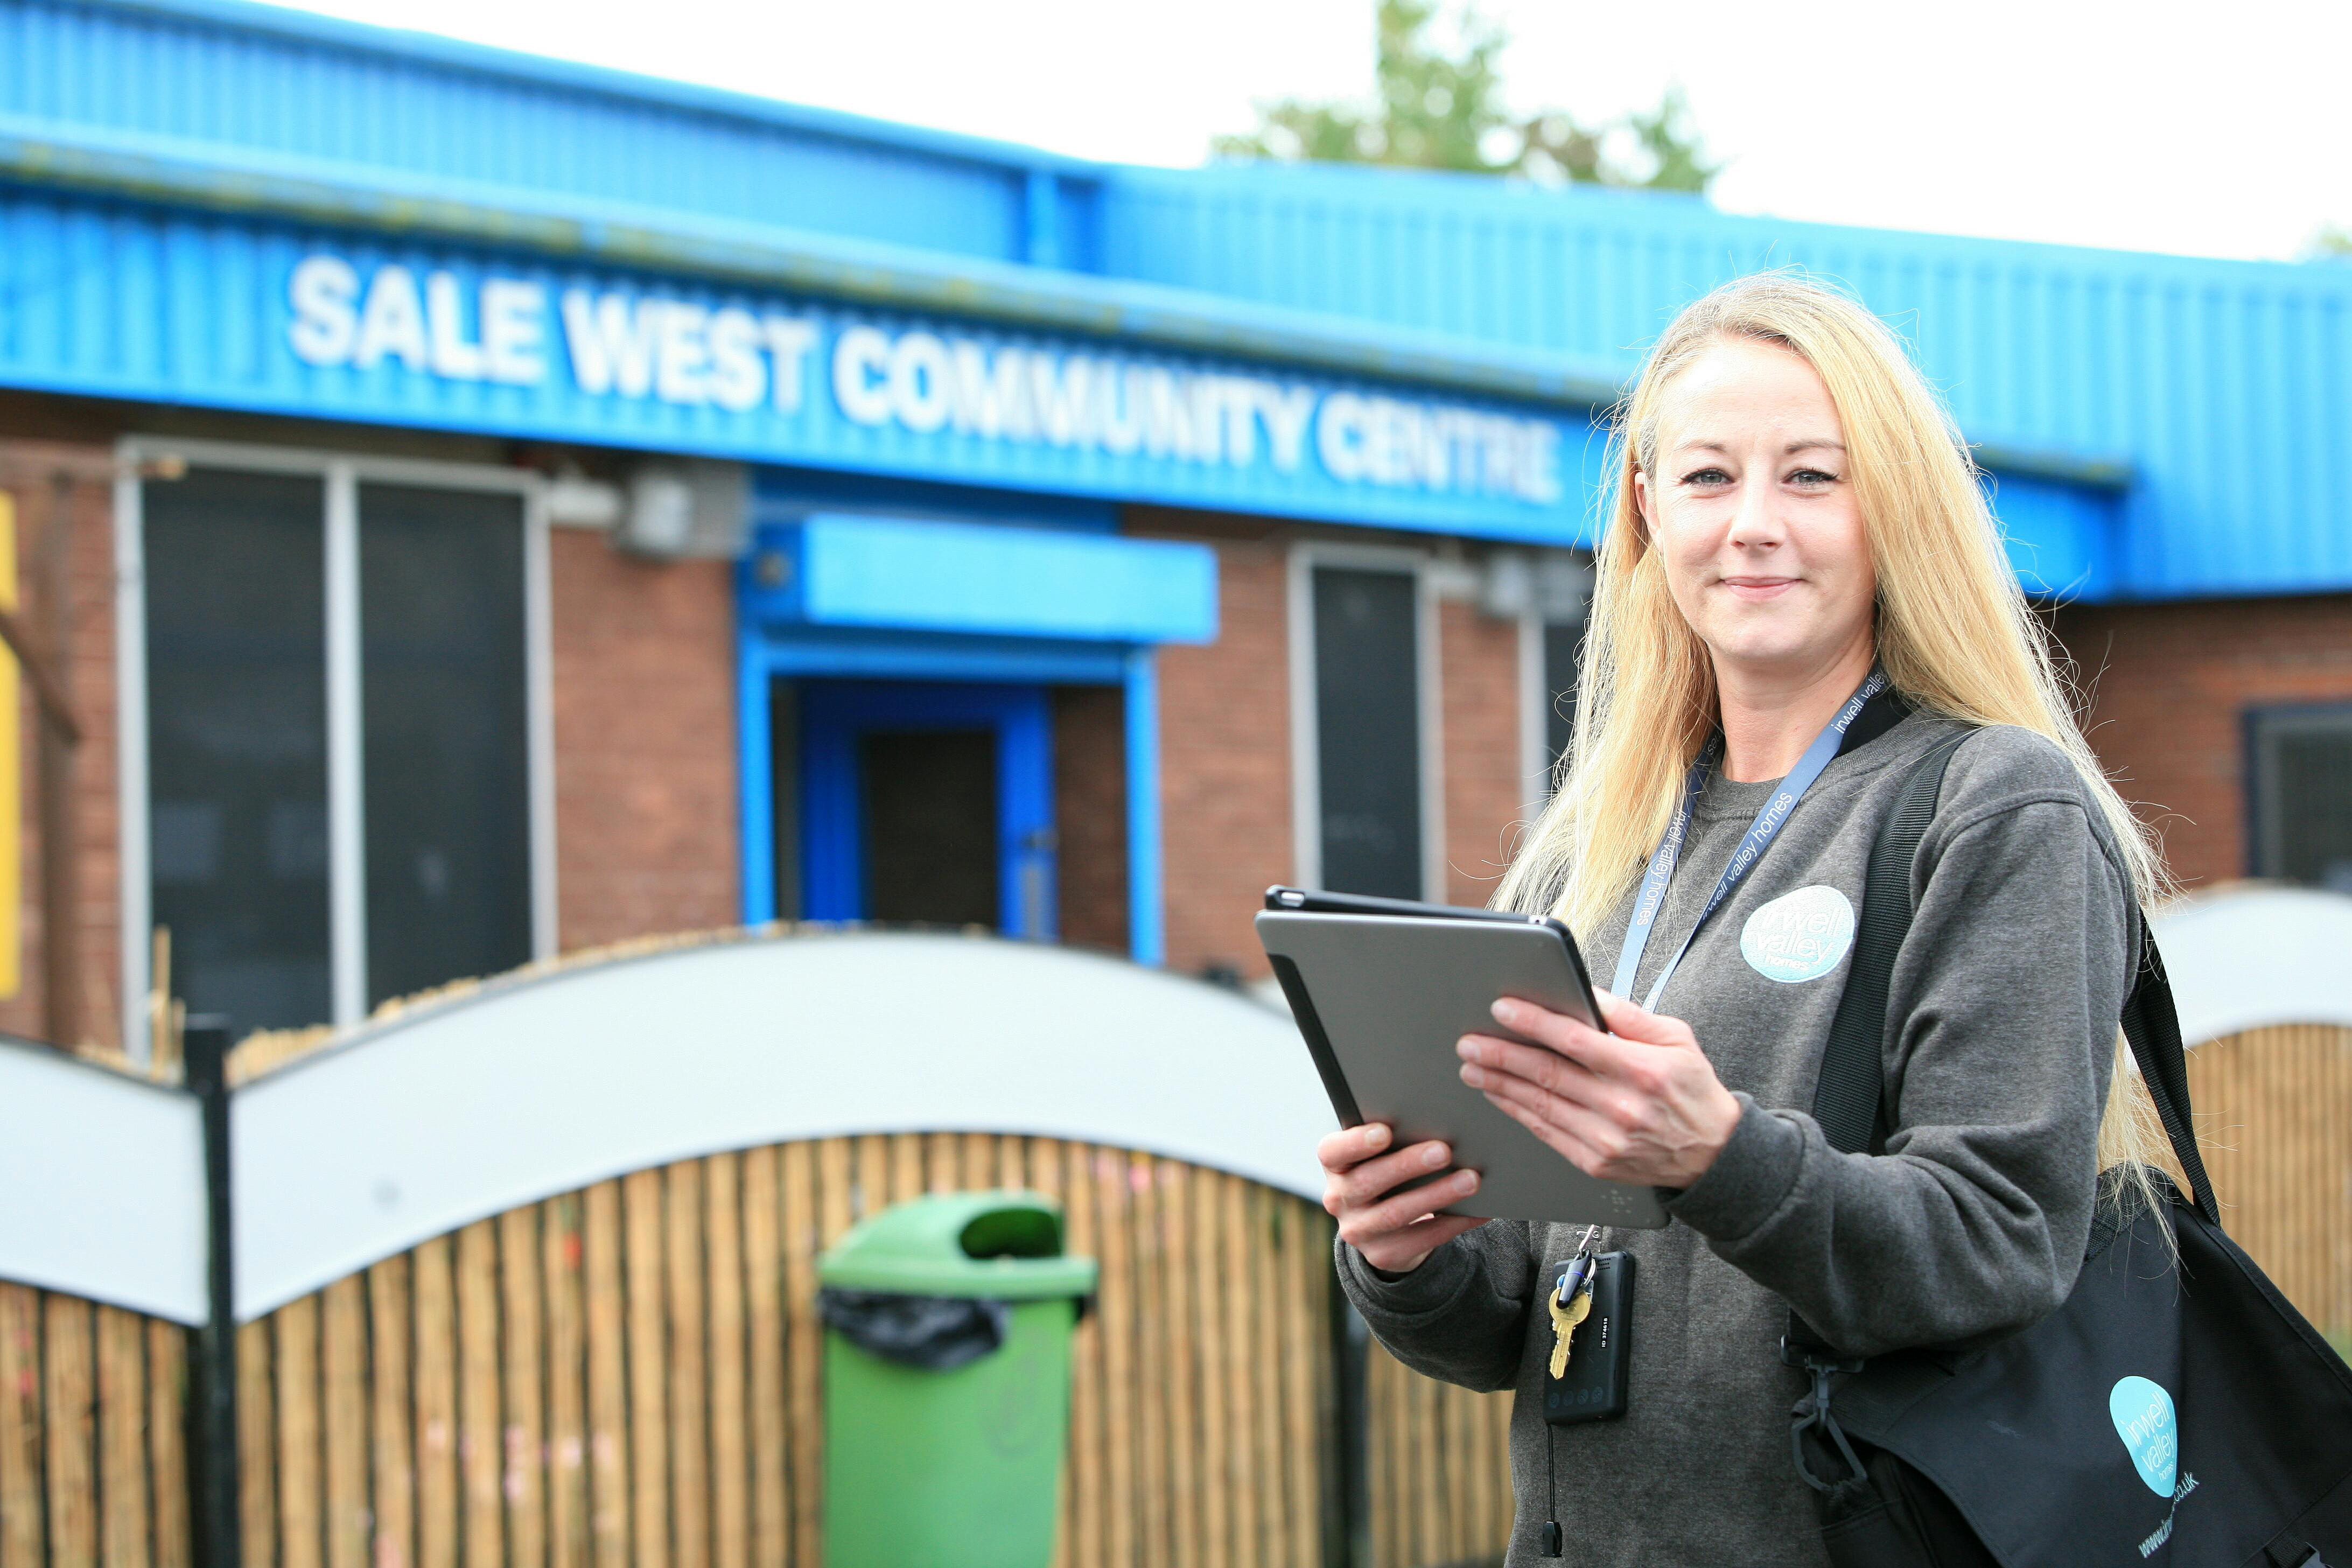 Improving homes and neighbourhoods in Sale West